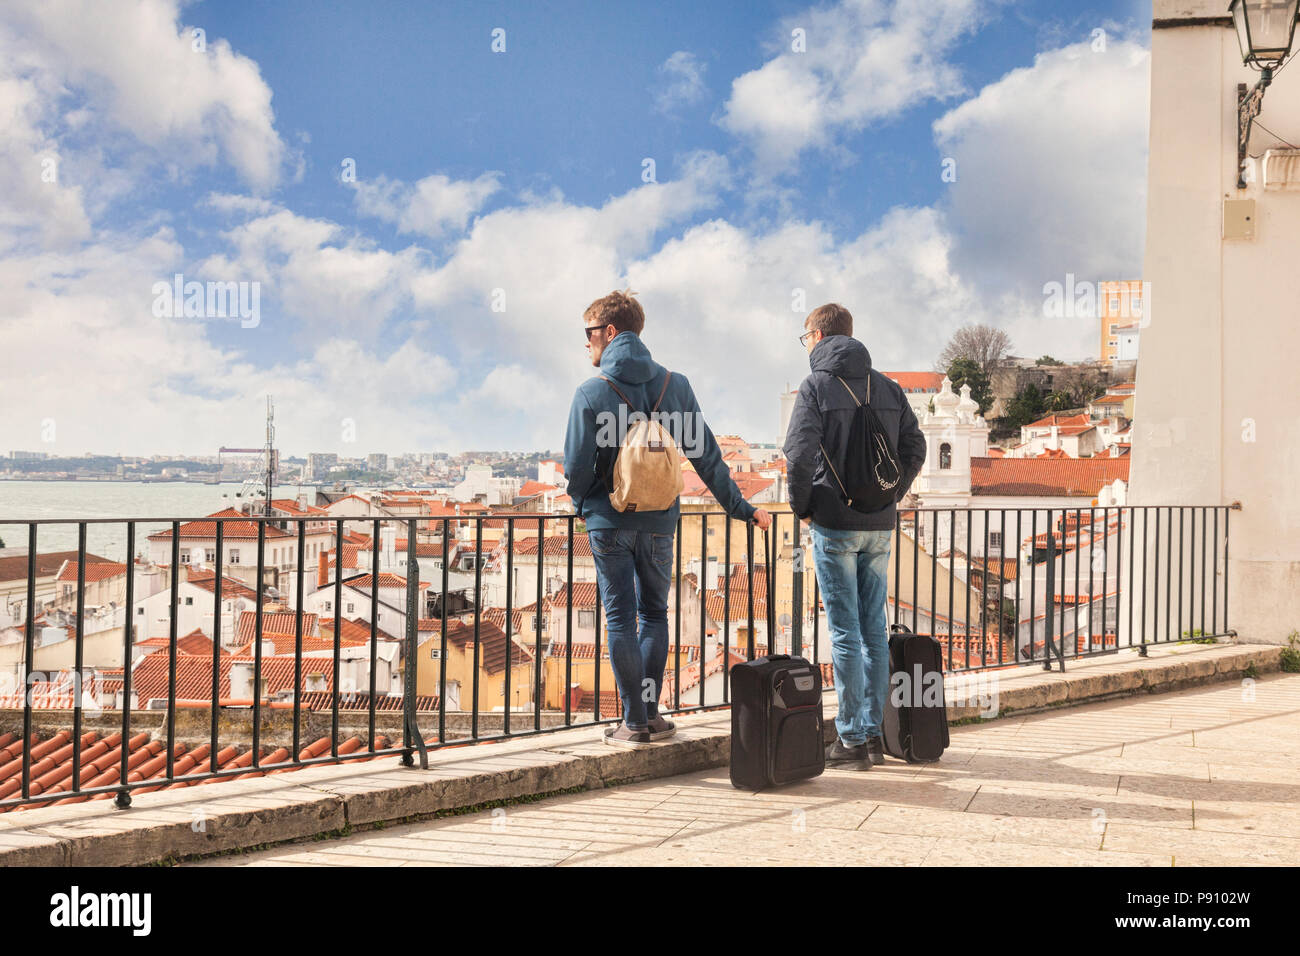 7 March 2018: Lisbon, Portugal - Two young males with carry on luggage looking at the view of the city from Miradouro de Santa Estevao. - Stock Image